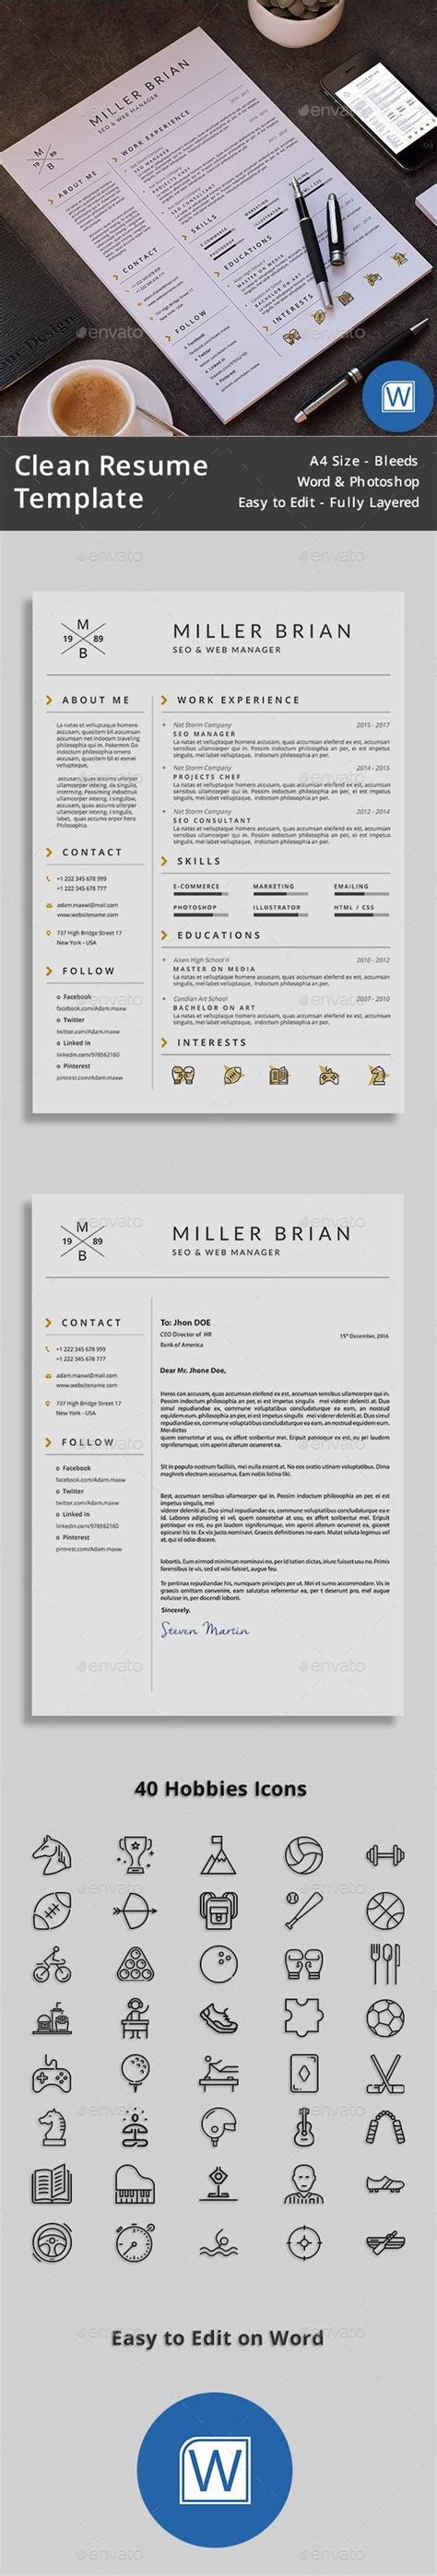 interactive digital media create a professional resume 25 best ideas about professional resume format on